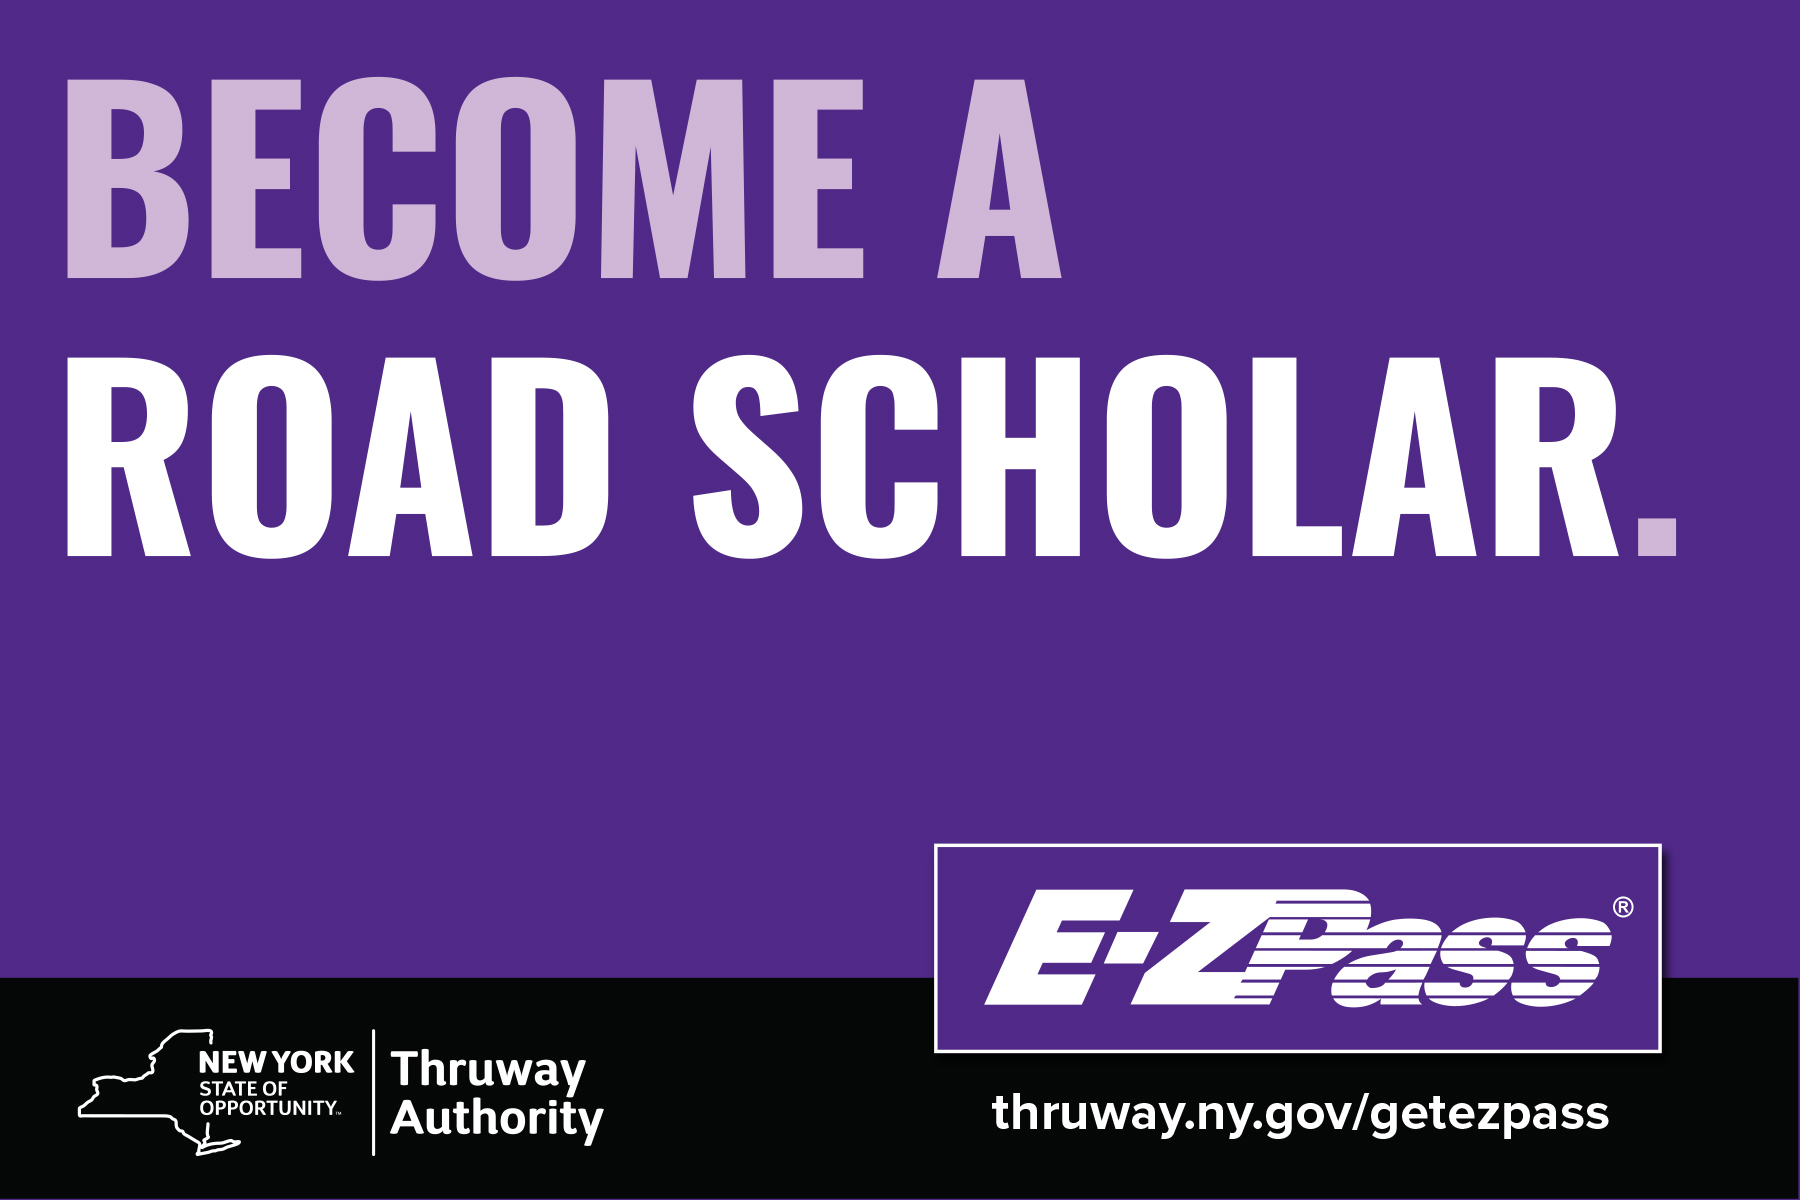 ezpass postcard ad become a road scholar